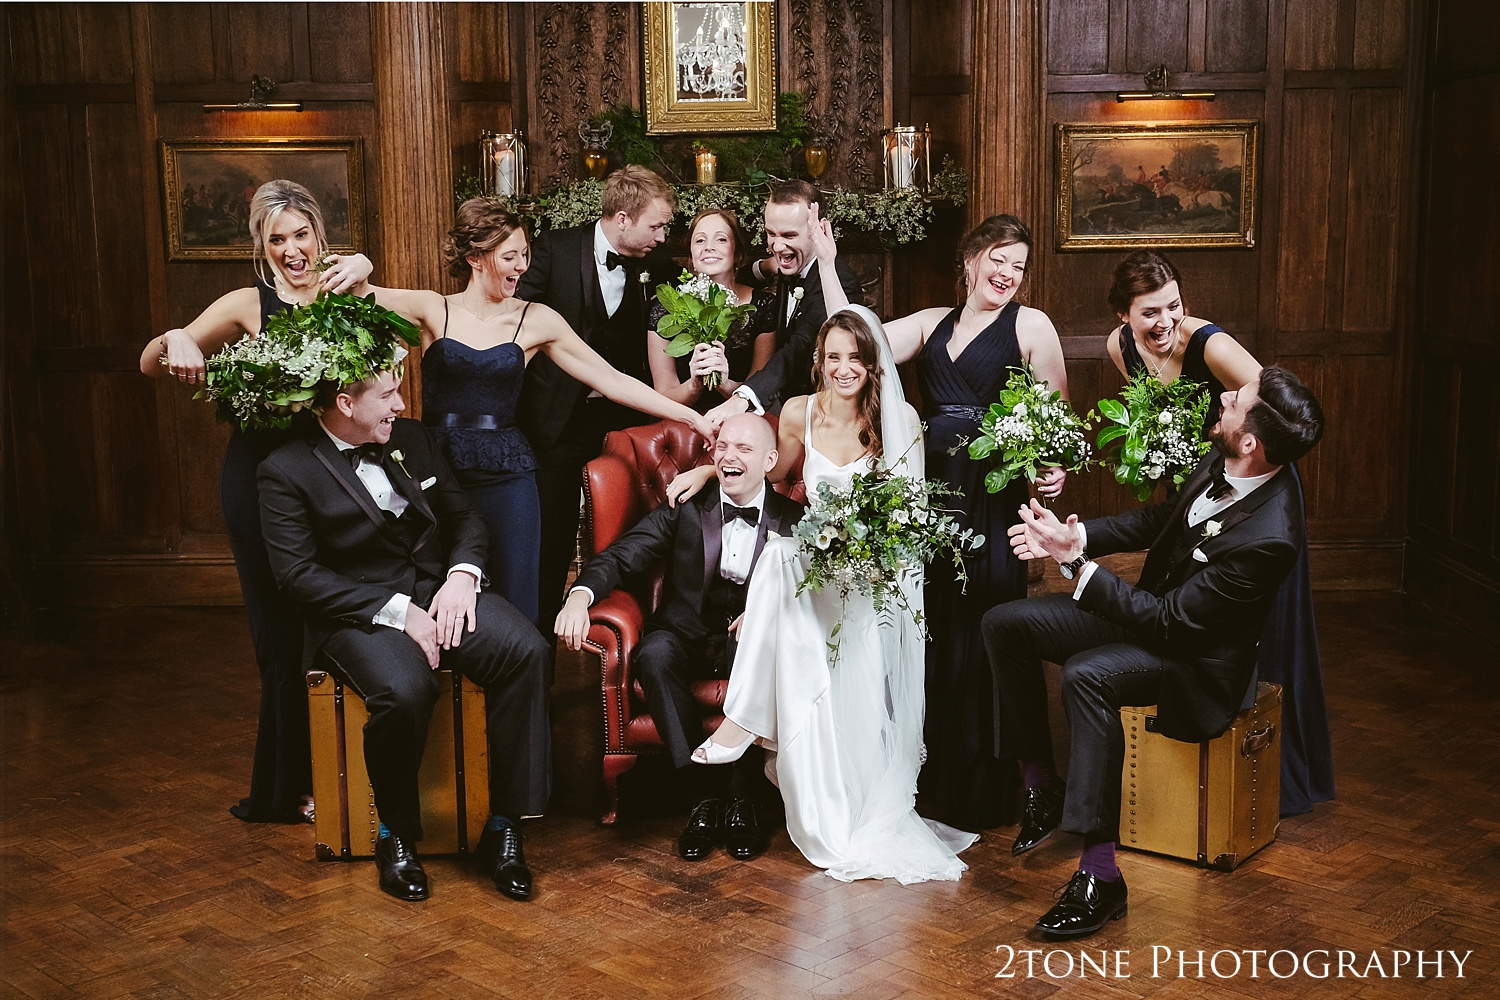 Natural and fun photography at Ellingham Hall. Winter wedding photography by www.2tonephotography.co.uk